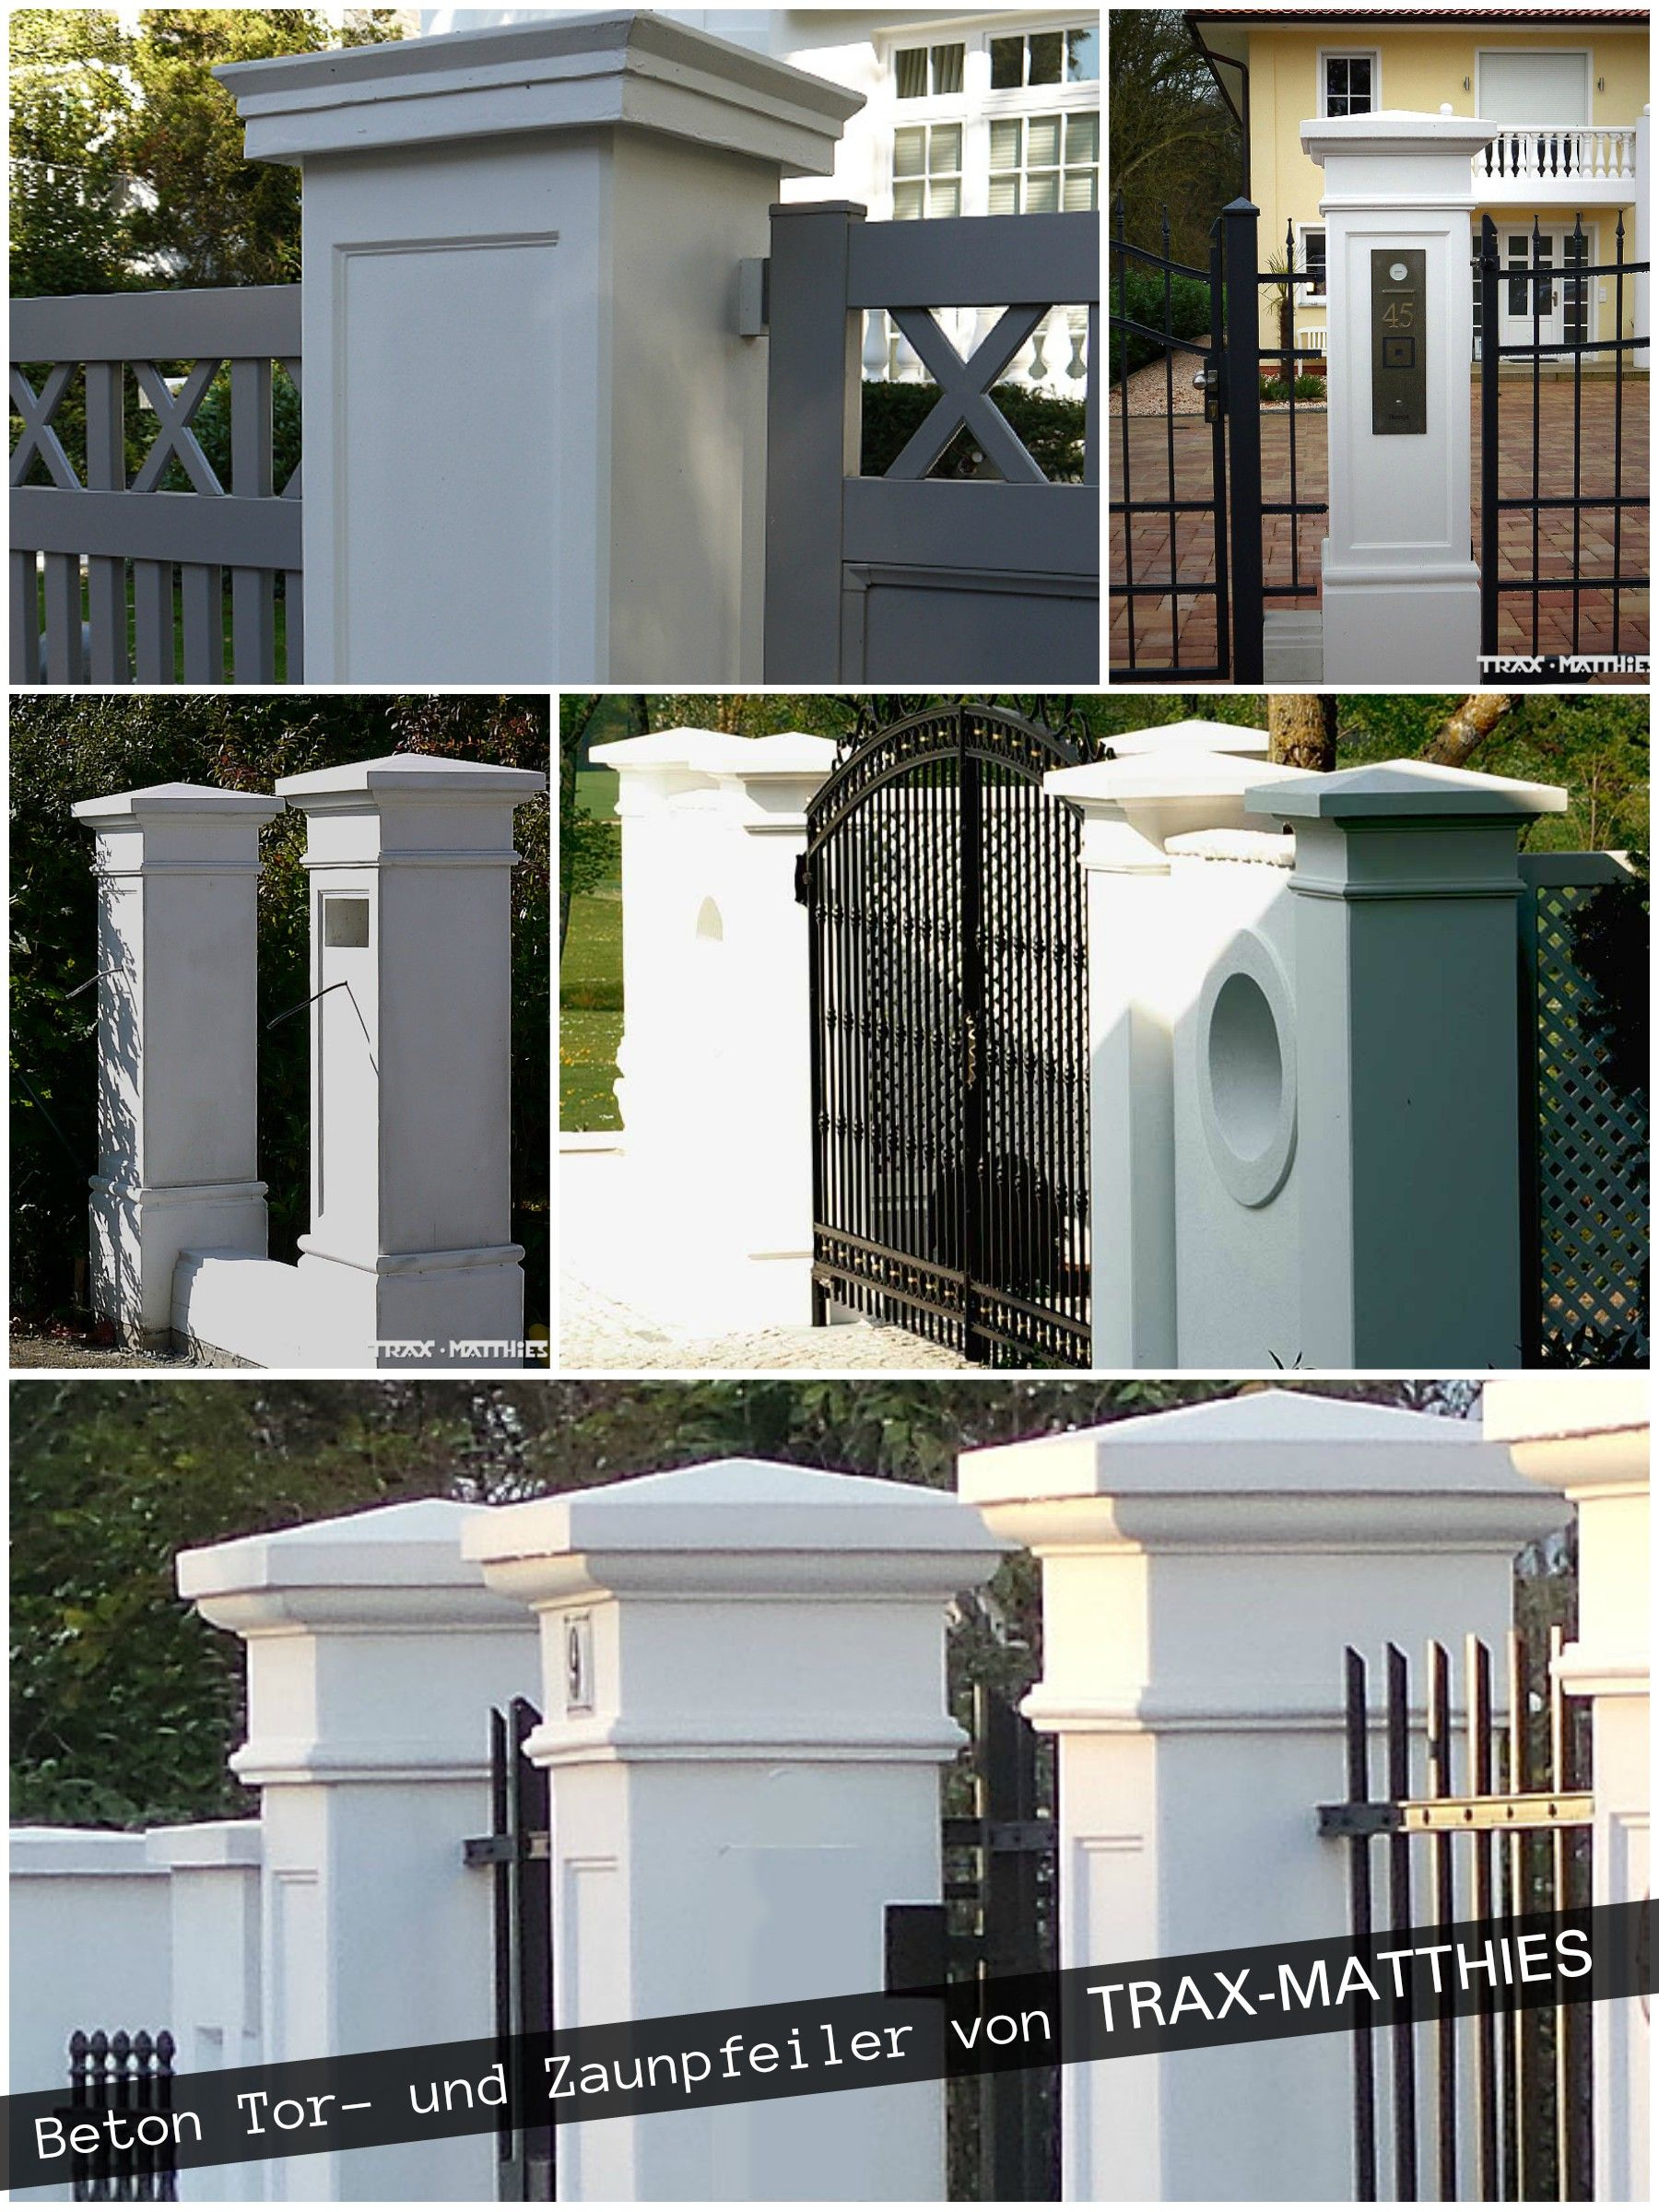 Pin by Adam Pearson on House | Pinterest | Fences, Gates and Gate